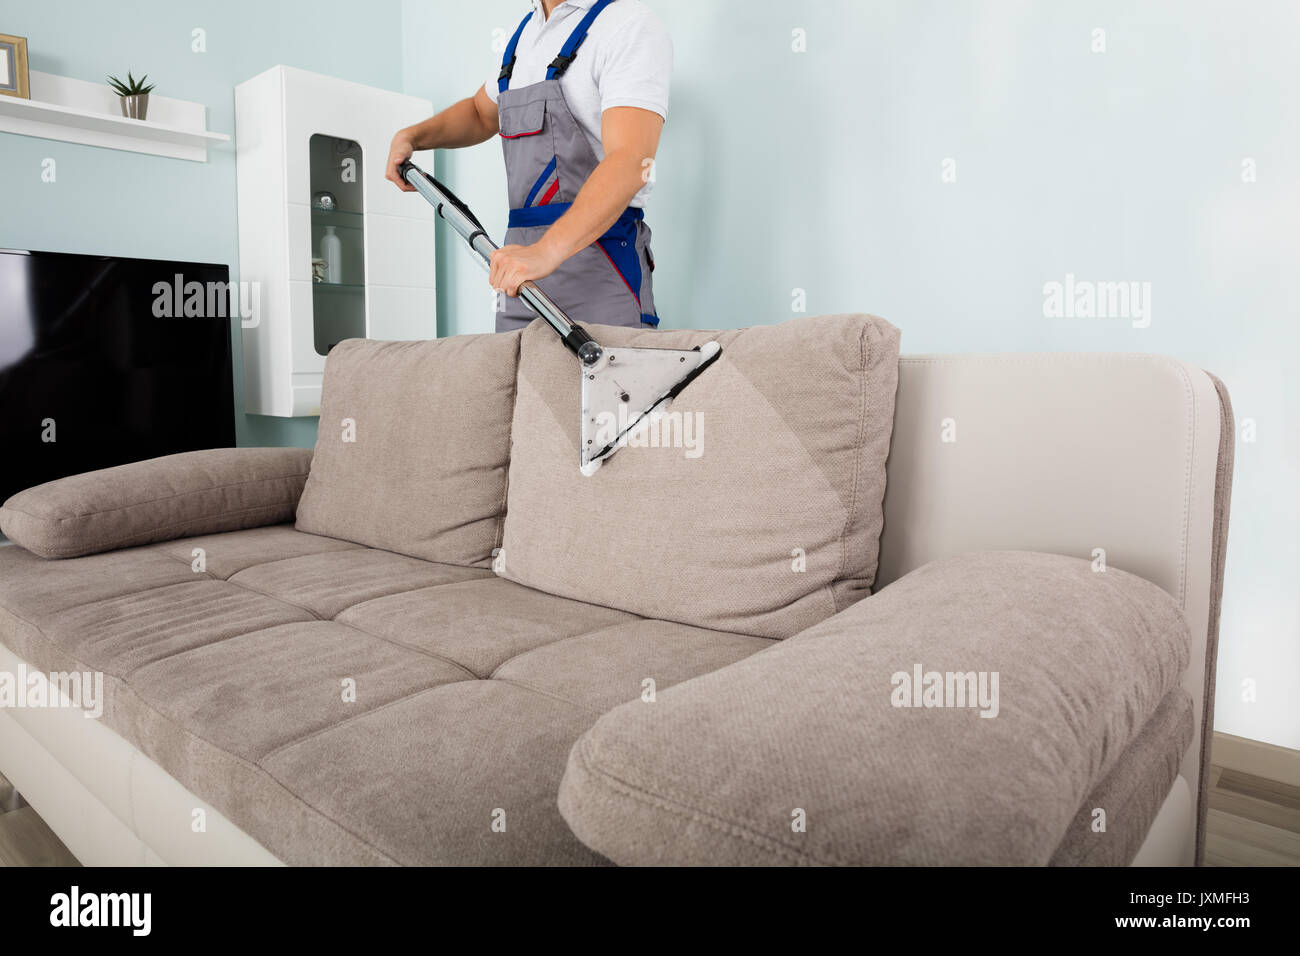 Sofa Reinigen Jeans People Vacuuming Young Stockfotos And People Vacuuming Young